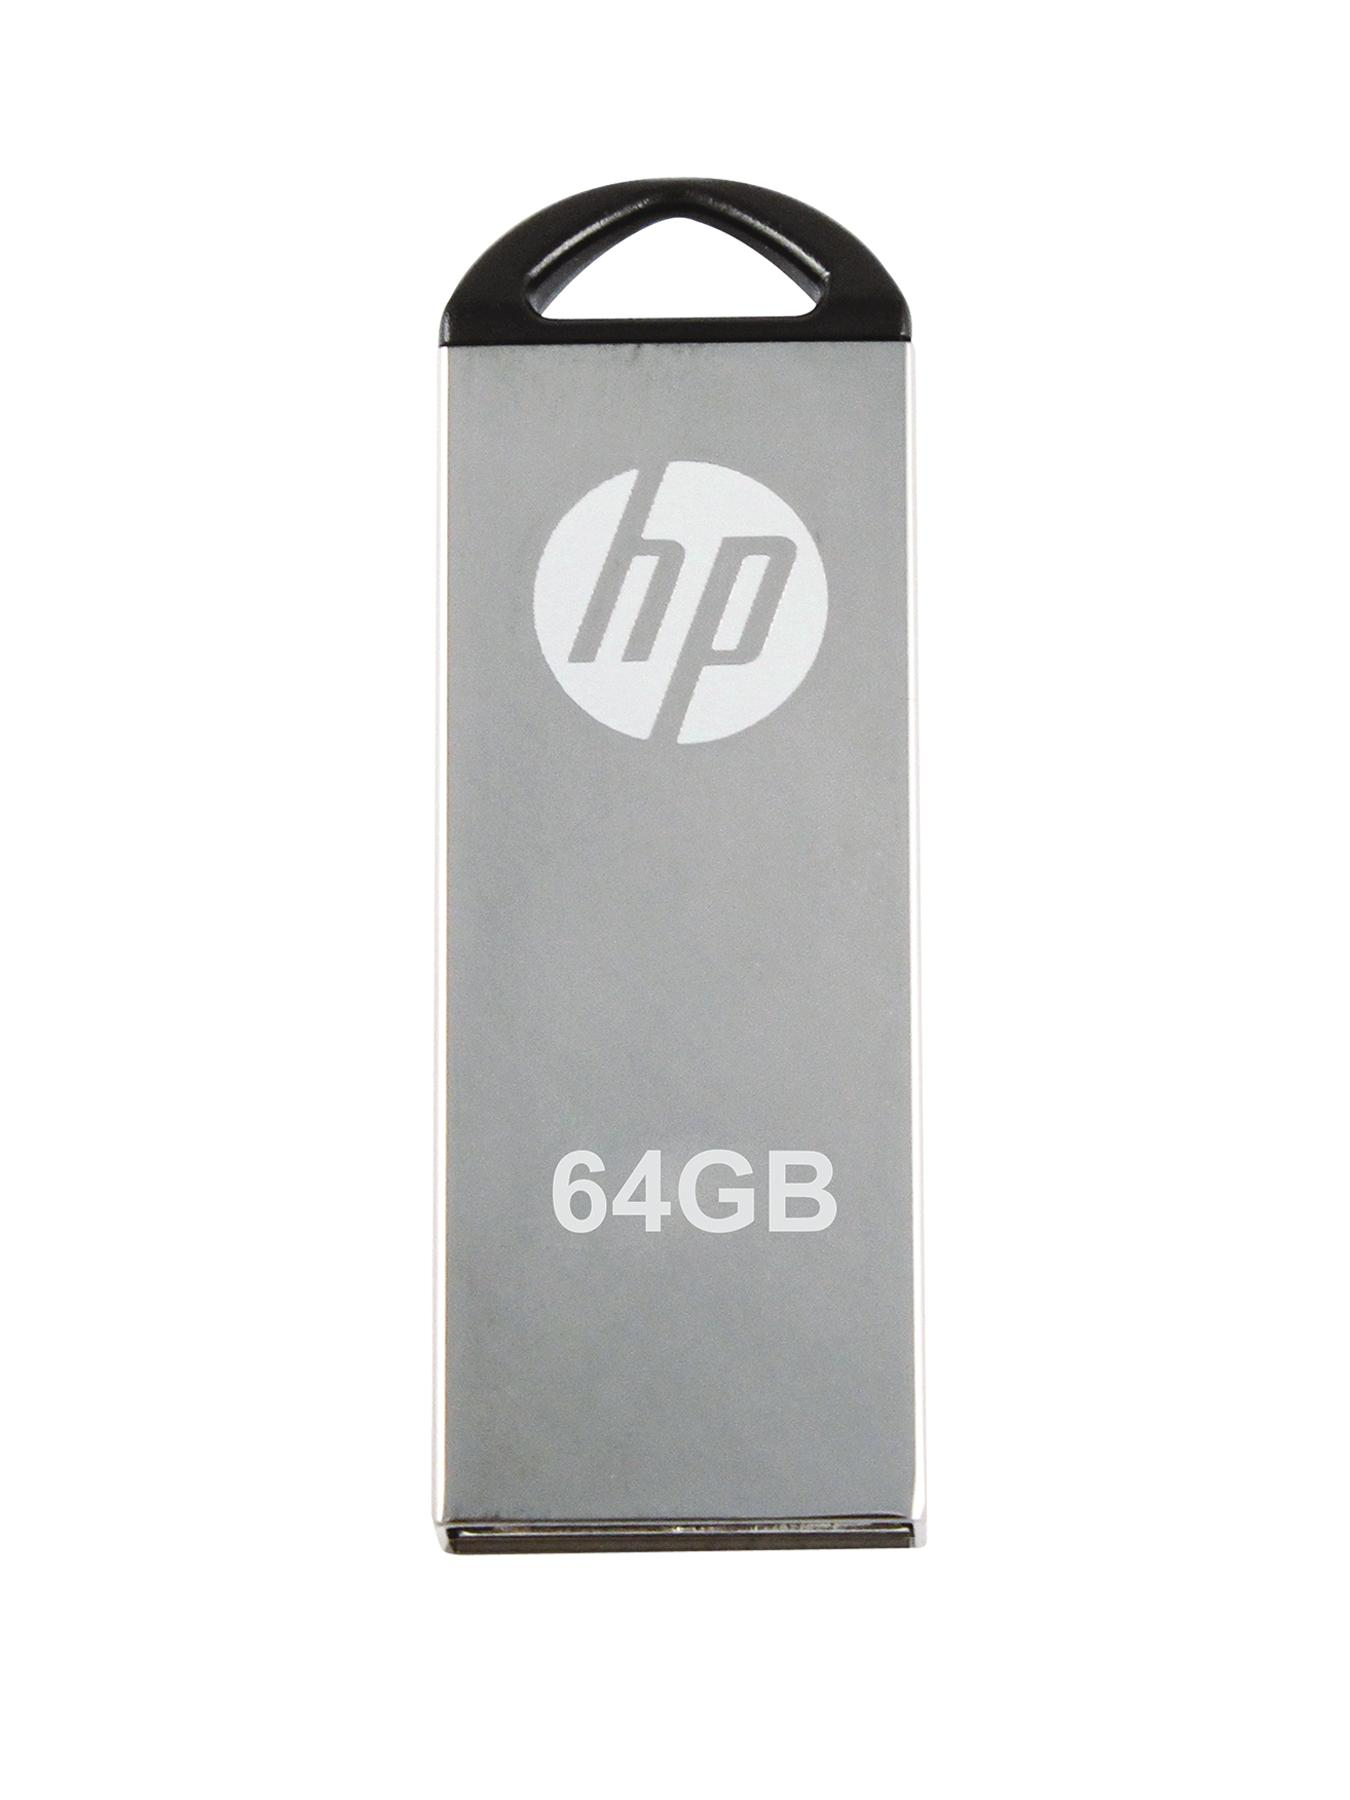 64Gb Metal HP USB Drive